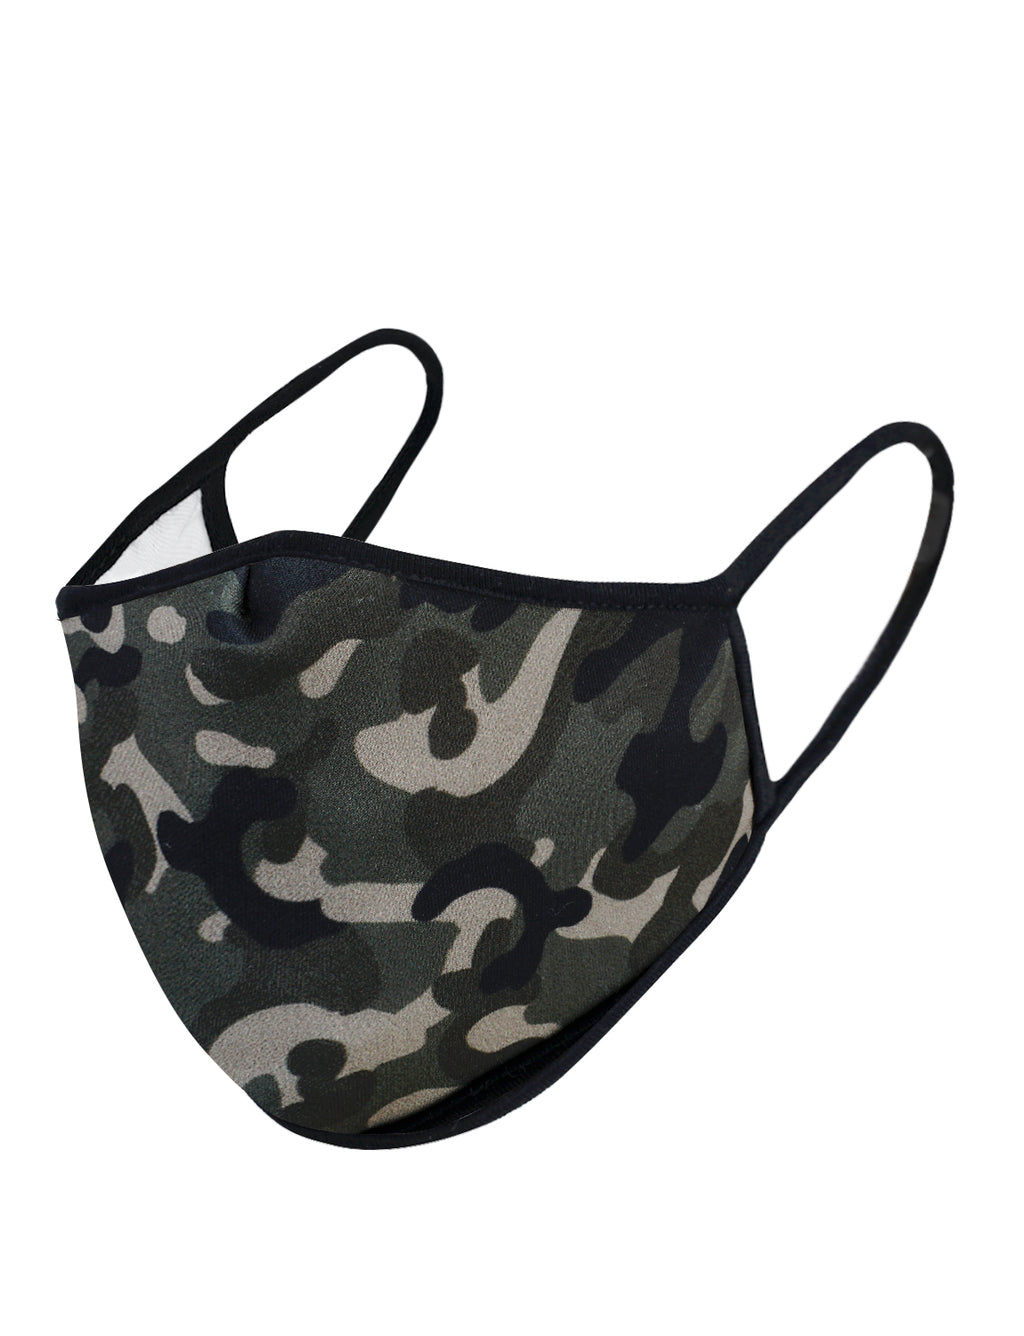 urban x apparel, urban x clothing, urbanxapparel, urbanxclothing, wholesale, women clothing, bohemian, free people, free spirit, young contemporary, fashion trend, fashion style, fashion 2019,RETAIL, ARMY Camouflage Print Washable and Reusable Fashion Face Mask, URBAN X APPAREL